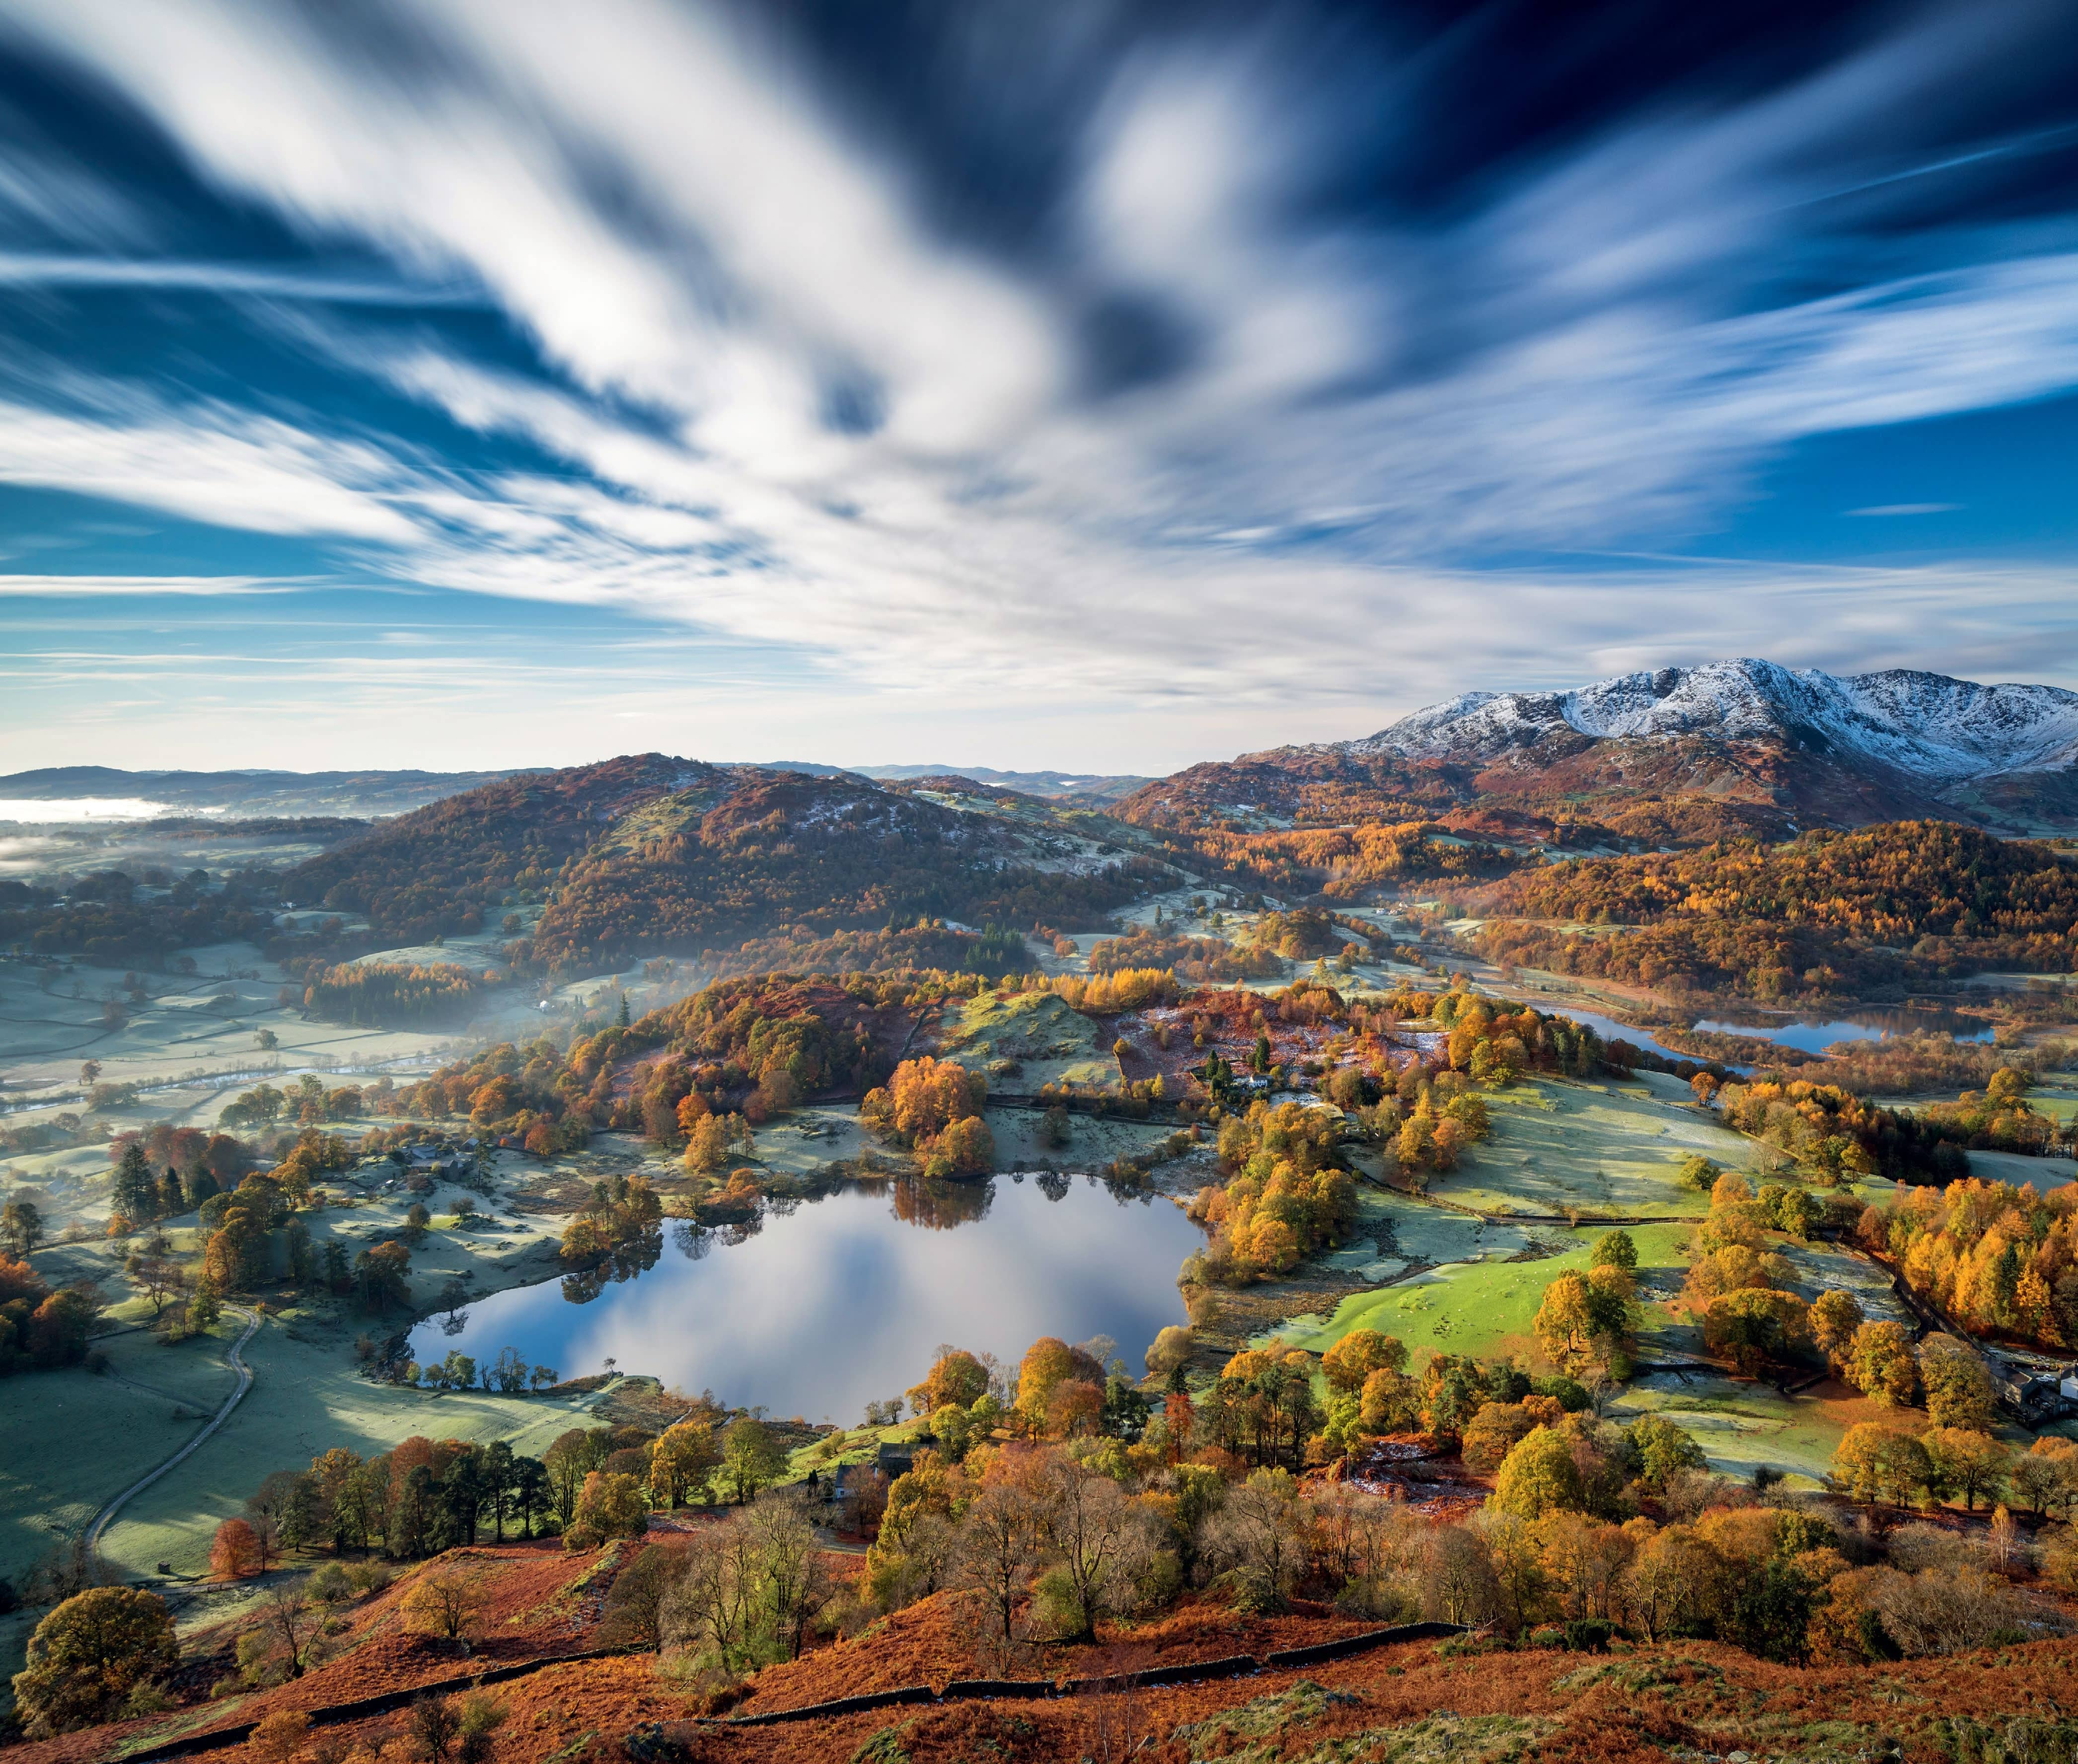 New Ways To Shoot Landscapes